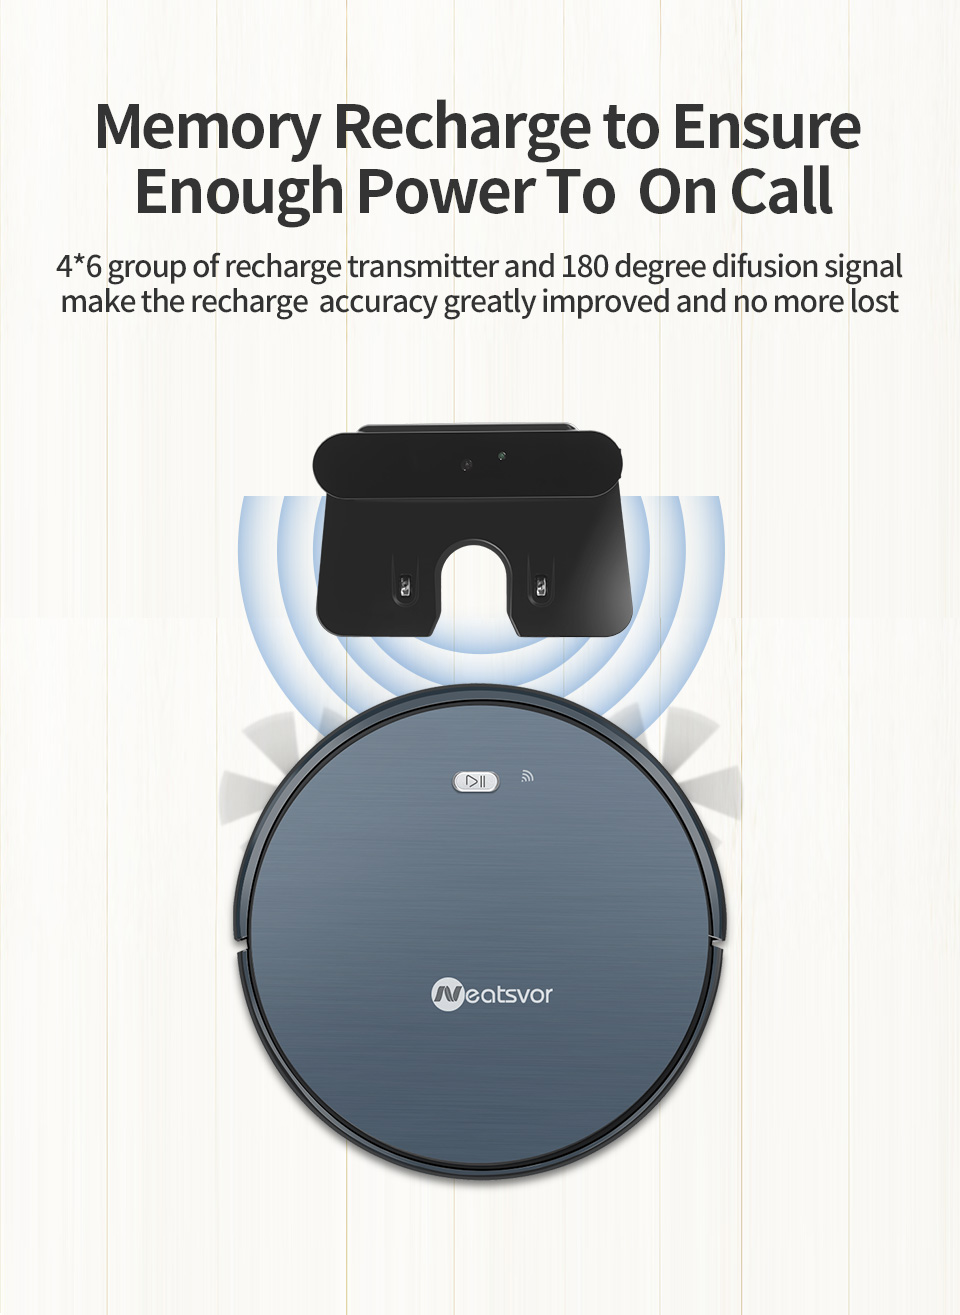 H3fcb676d23274701b7c31690307cdc6cX NEATSVOR X500 Robot Vacuum Cleaner 1800PA Poweful Suction 3in1 pet hair home dry wet mopping cleaning robot Auto Charge vacuum